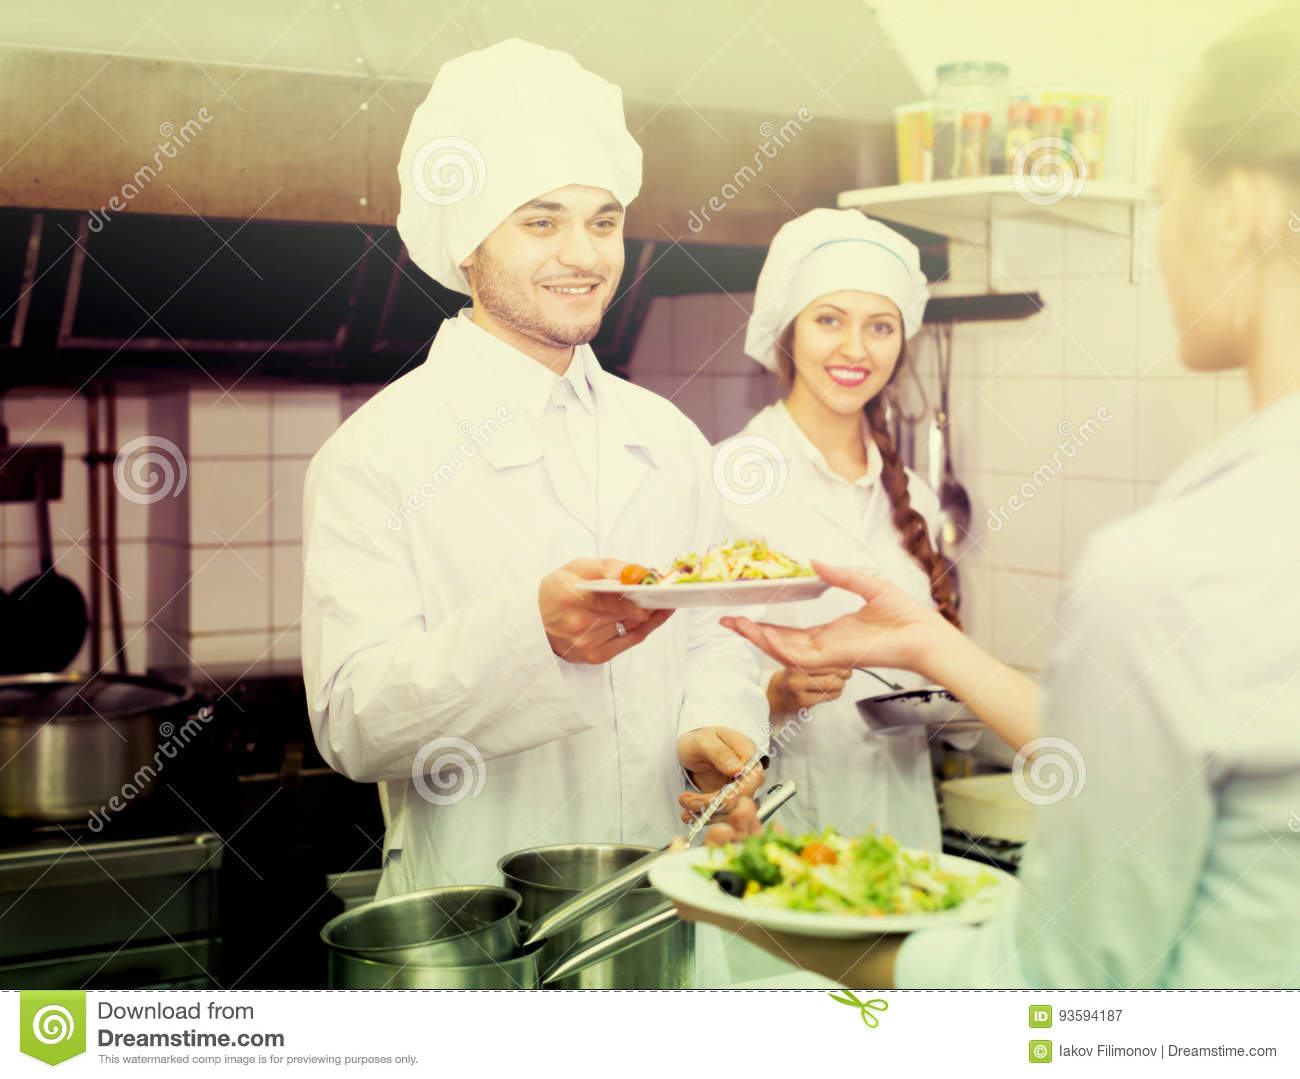 Waitress taking dish from kitchen